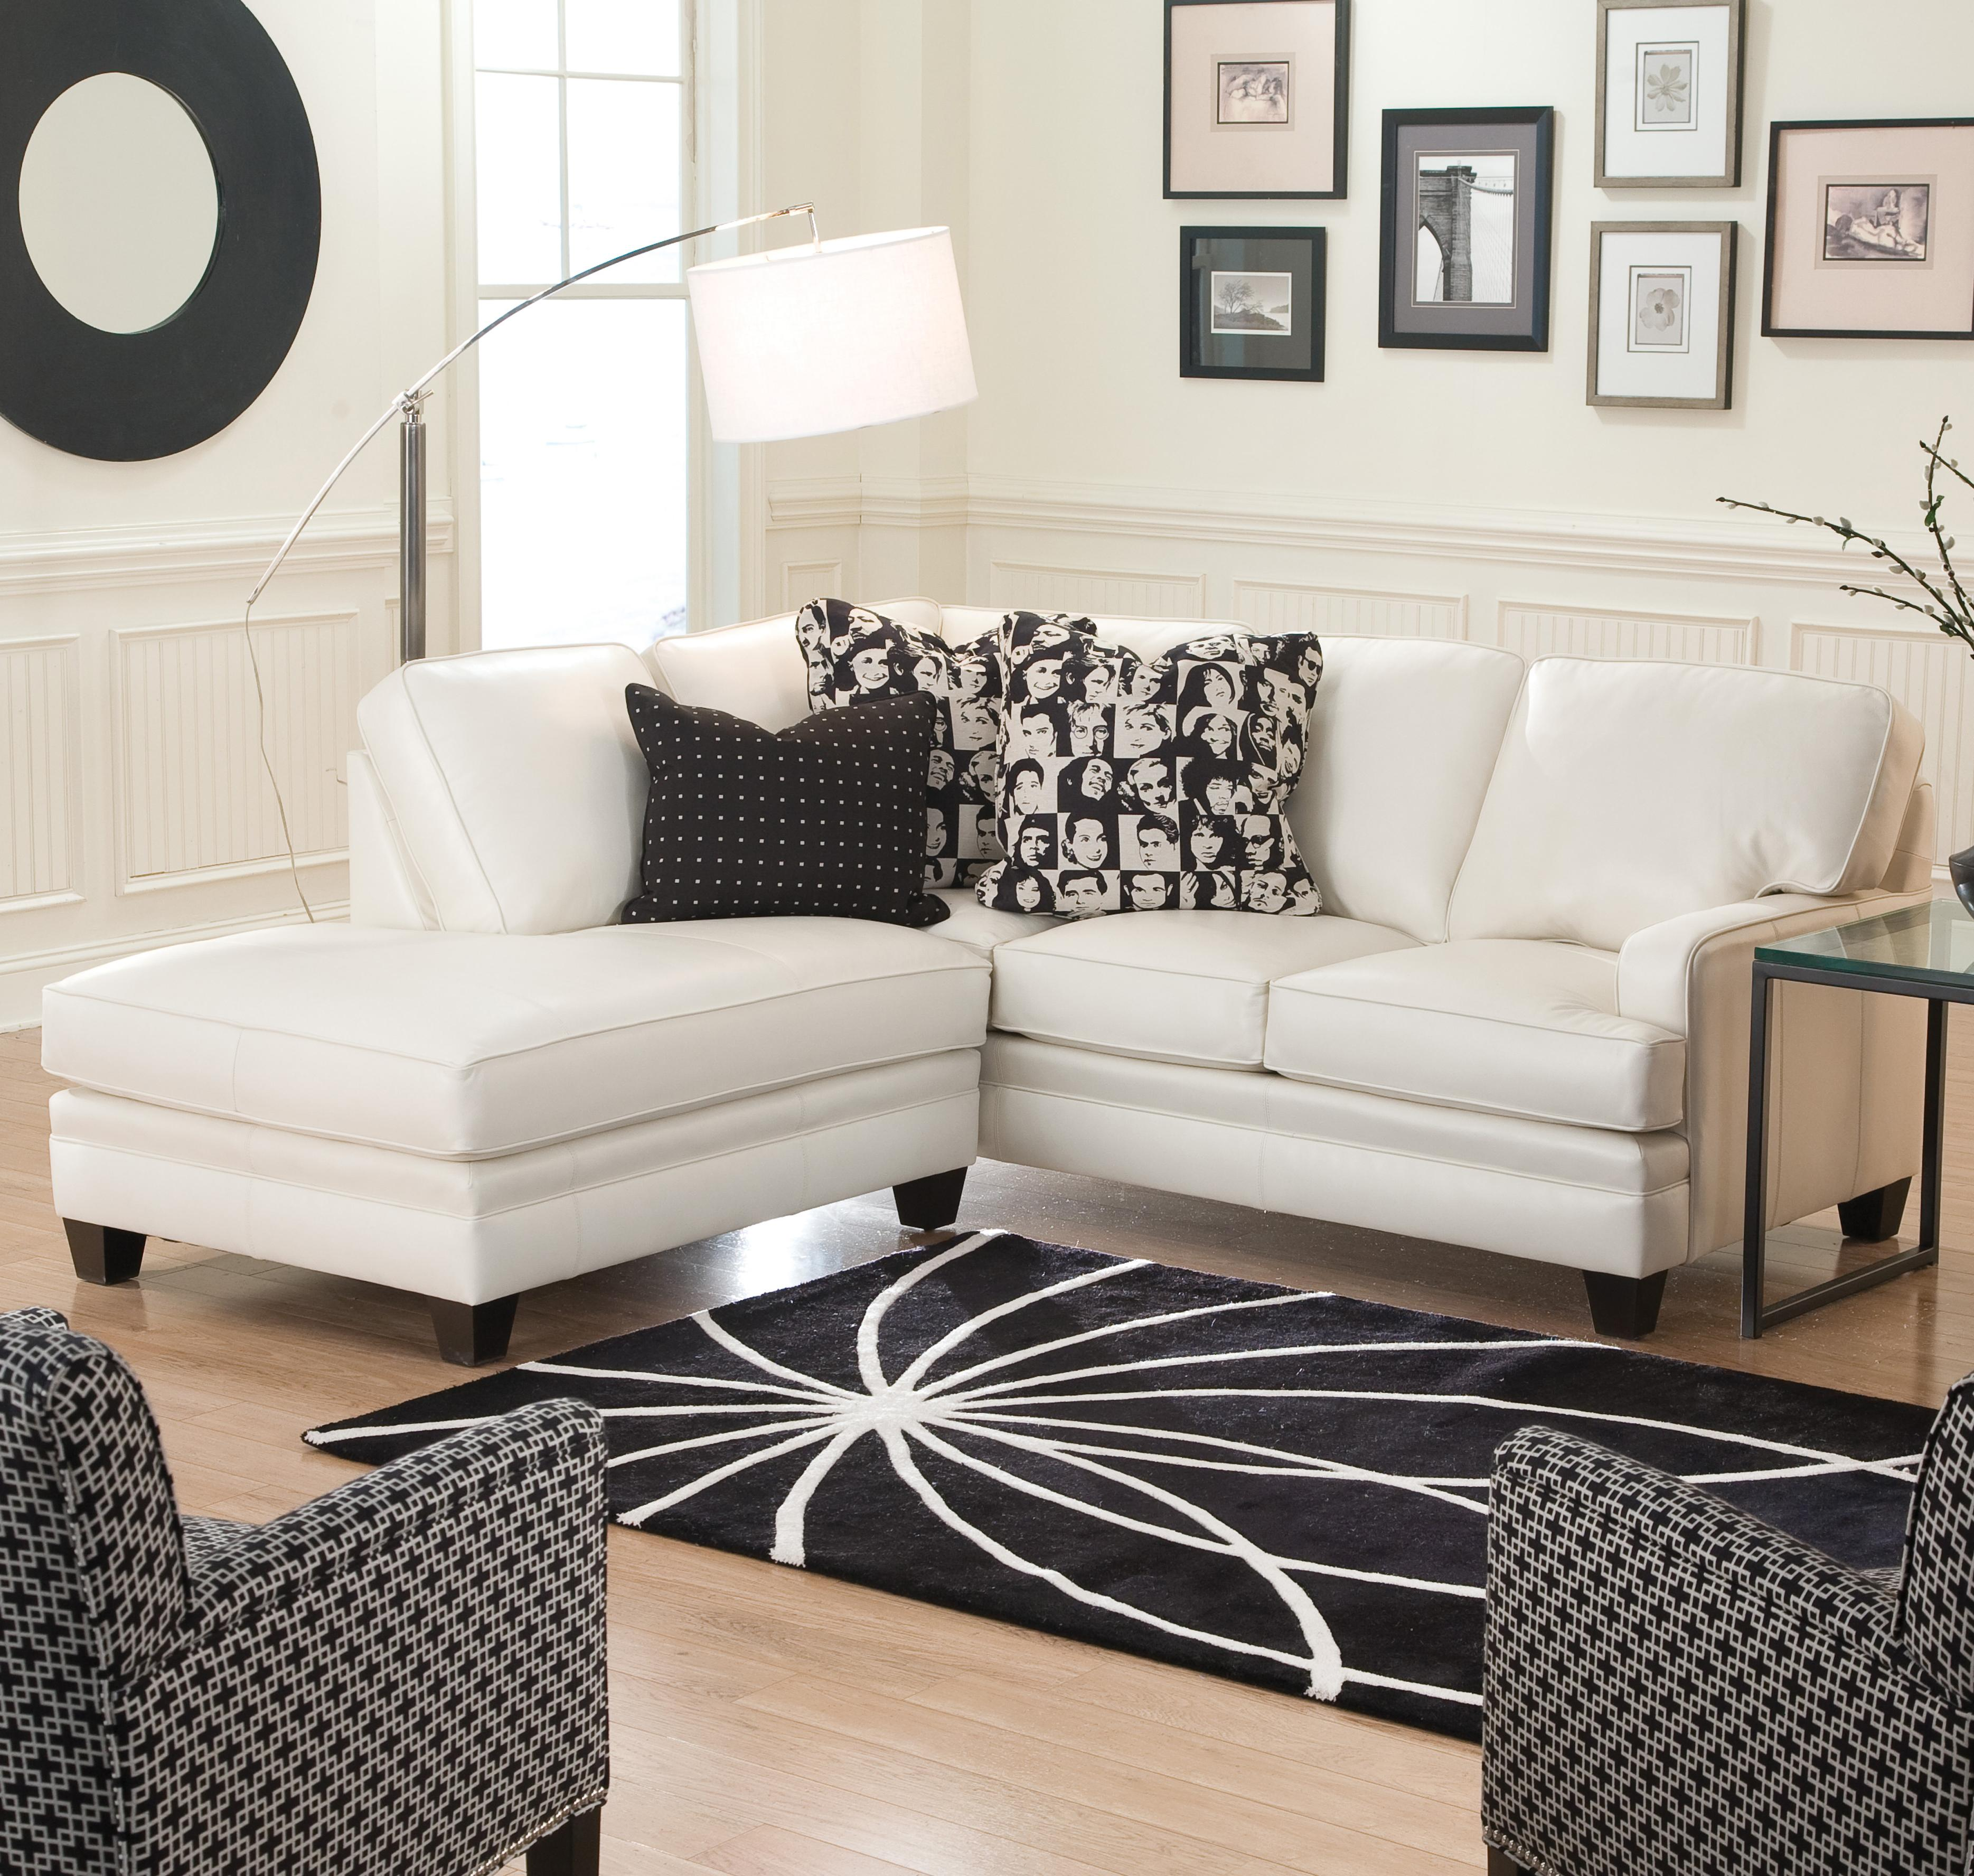 Small Sectional Sofa with Contemporary Look by Smith